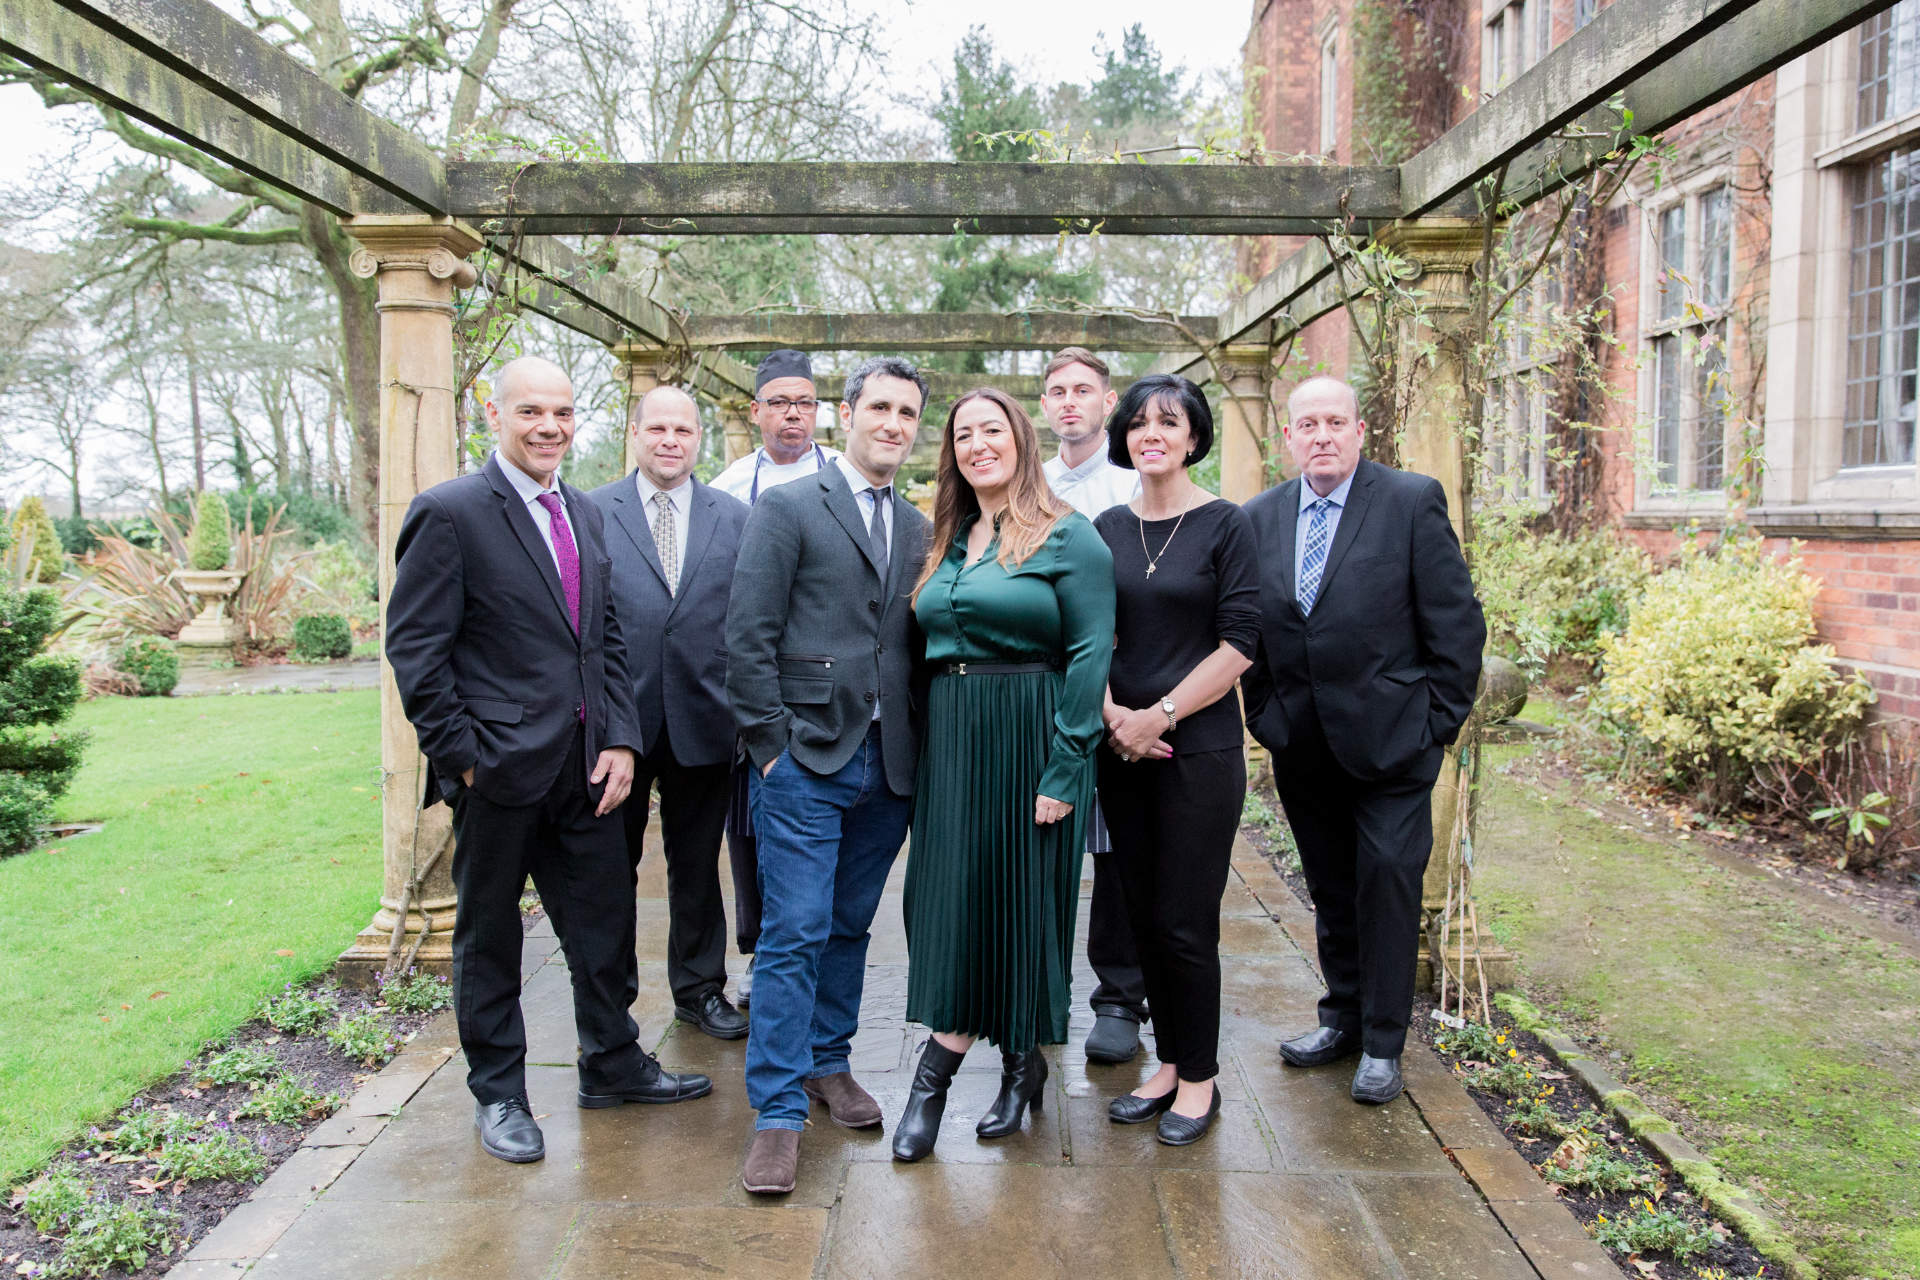 Brand Shoot for Moxhull Hall, Jan 2020